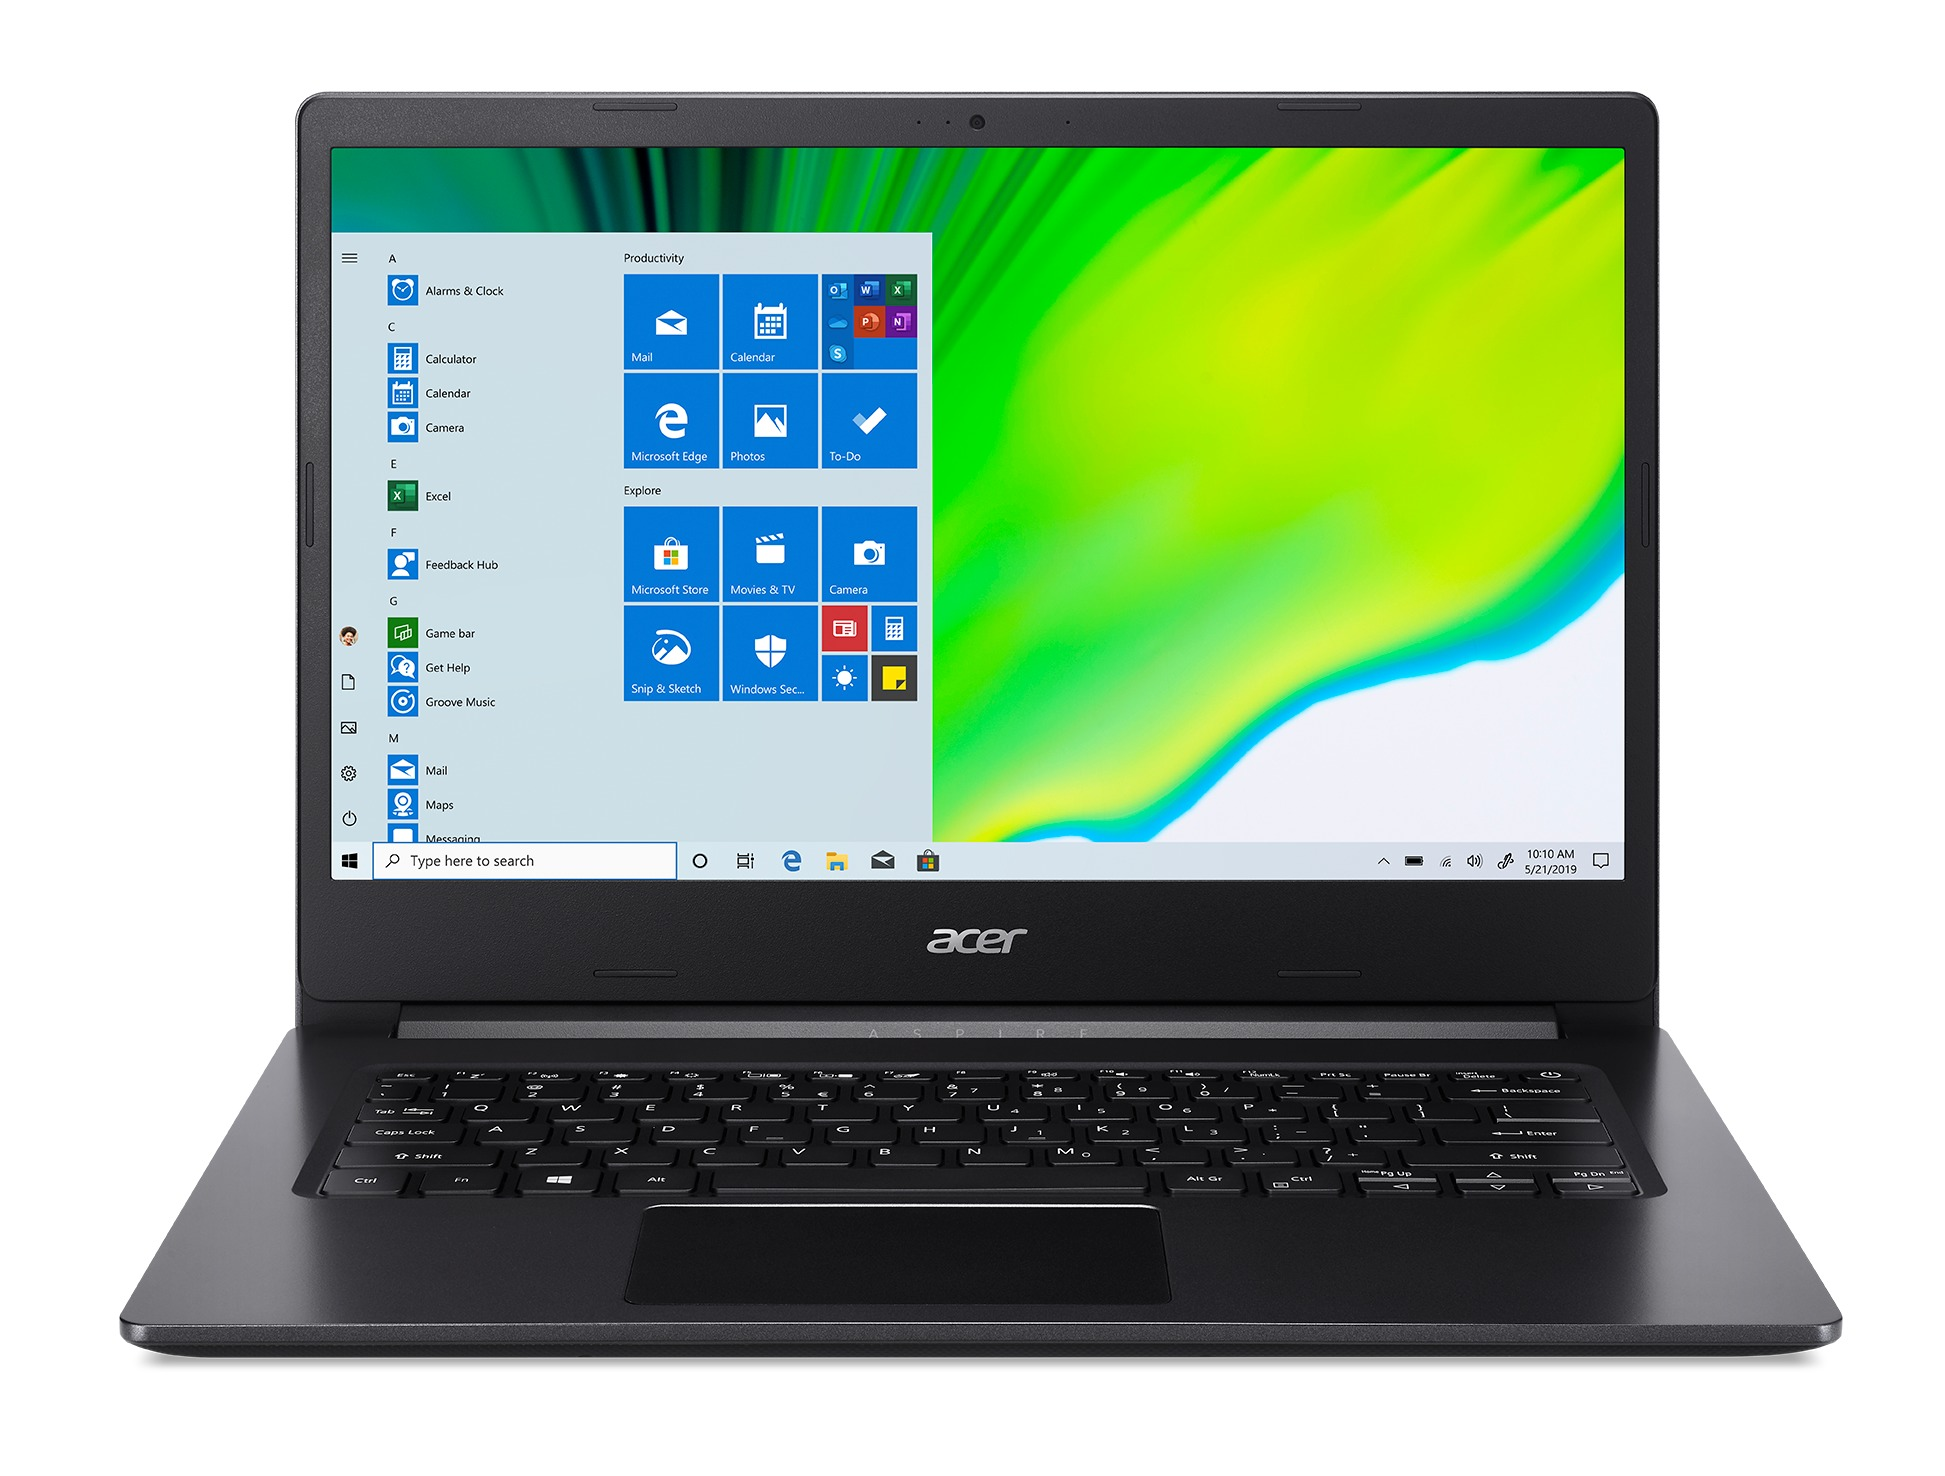 Acer Aspire 3 A314-22-R1V3 Laptop -